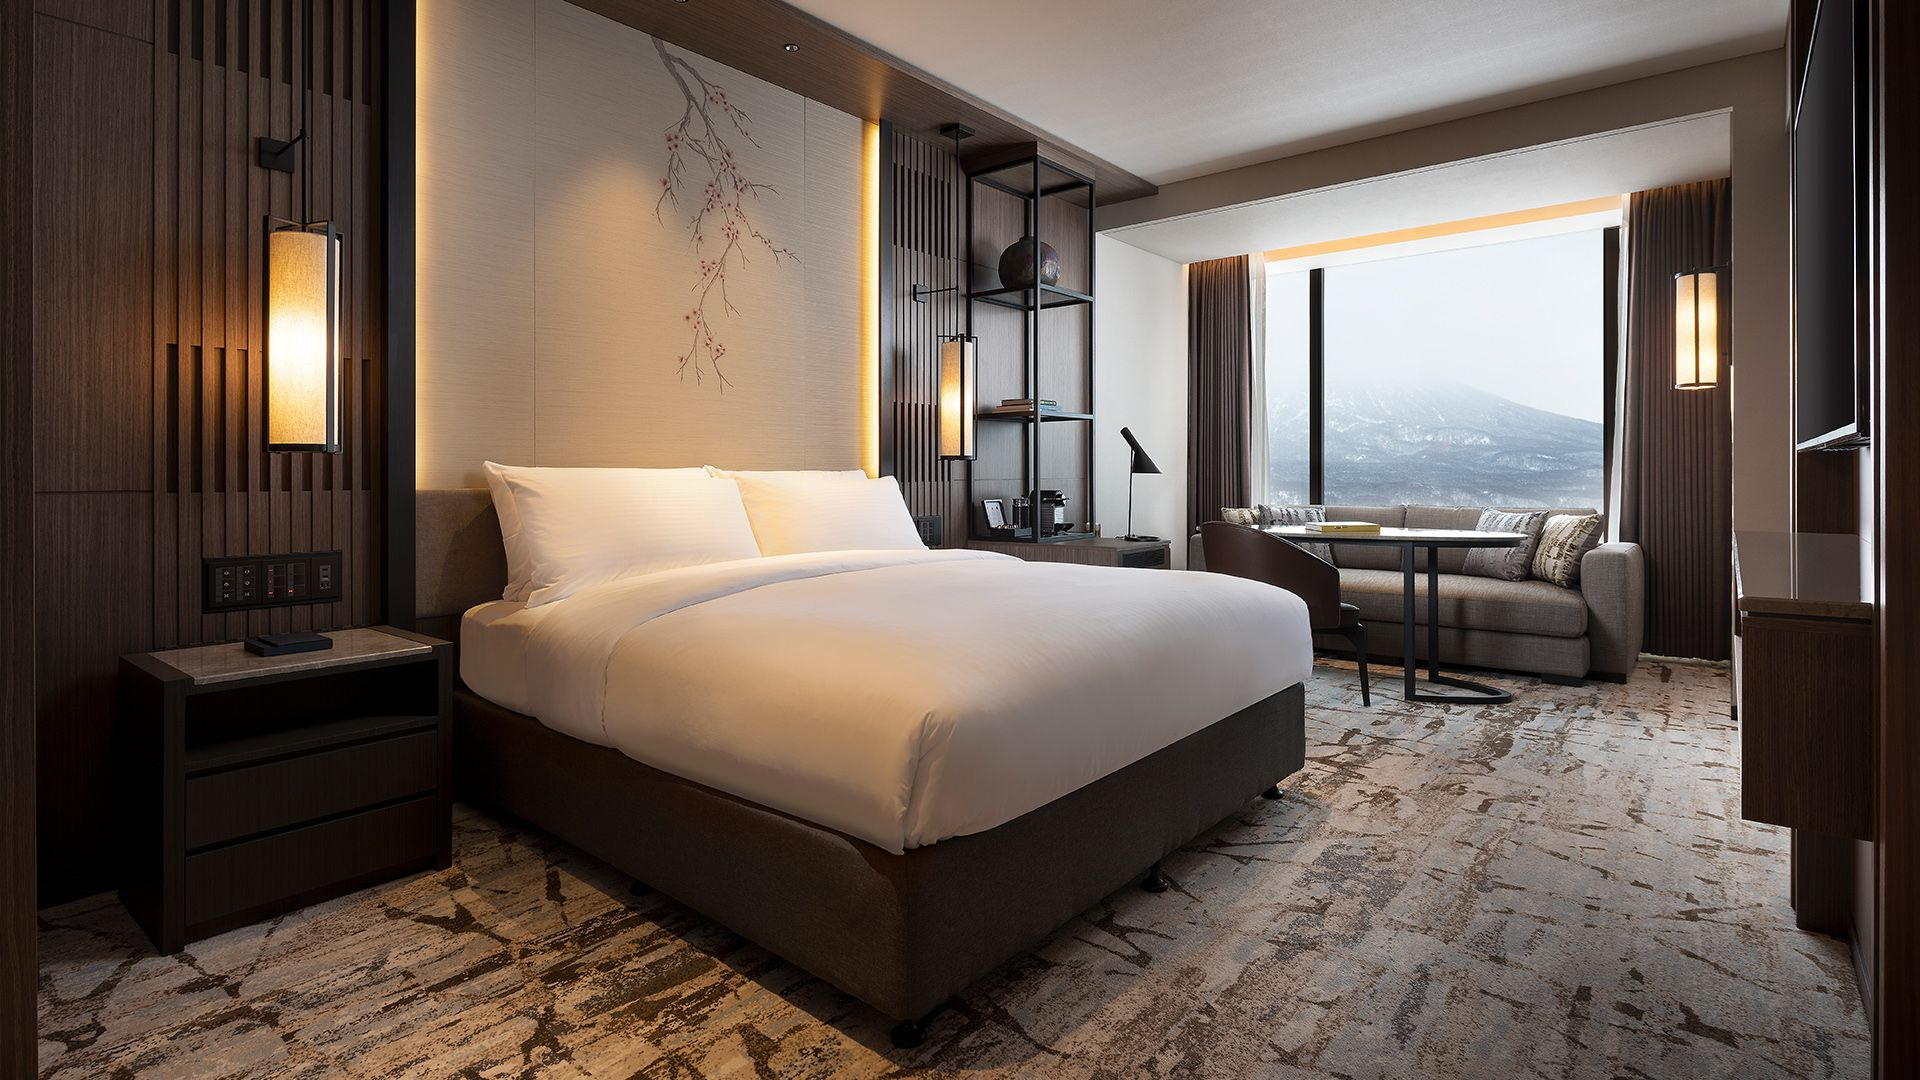 Marriott International Expects to Open Nearly 100 Properties in Asia Pacific in 2021